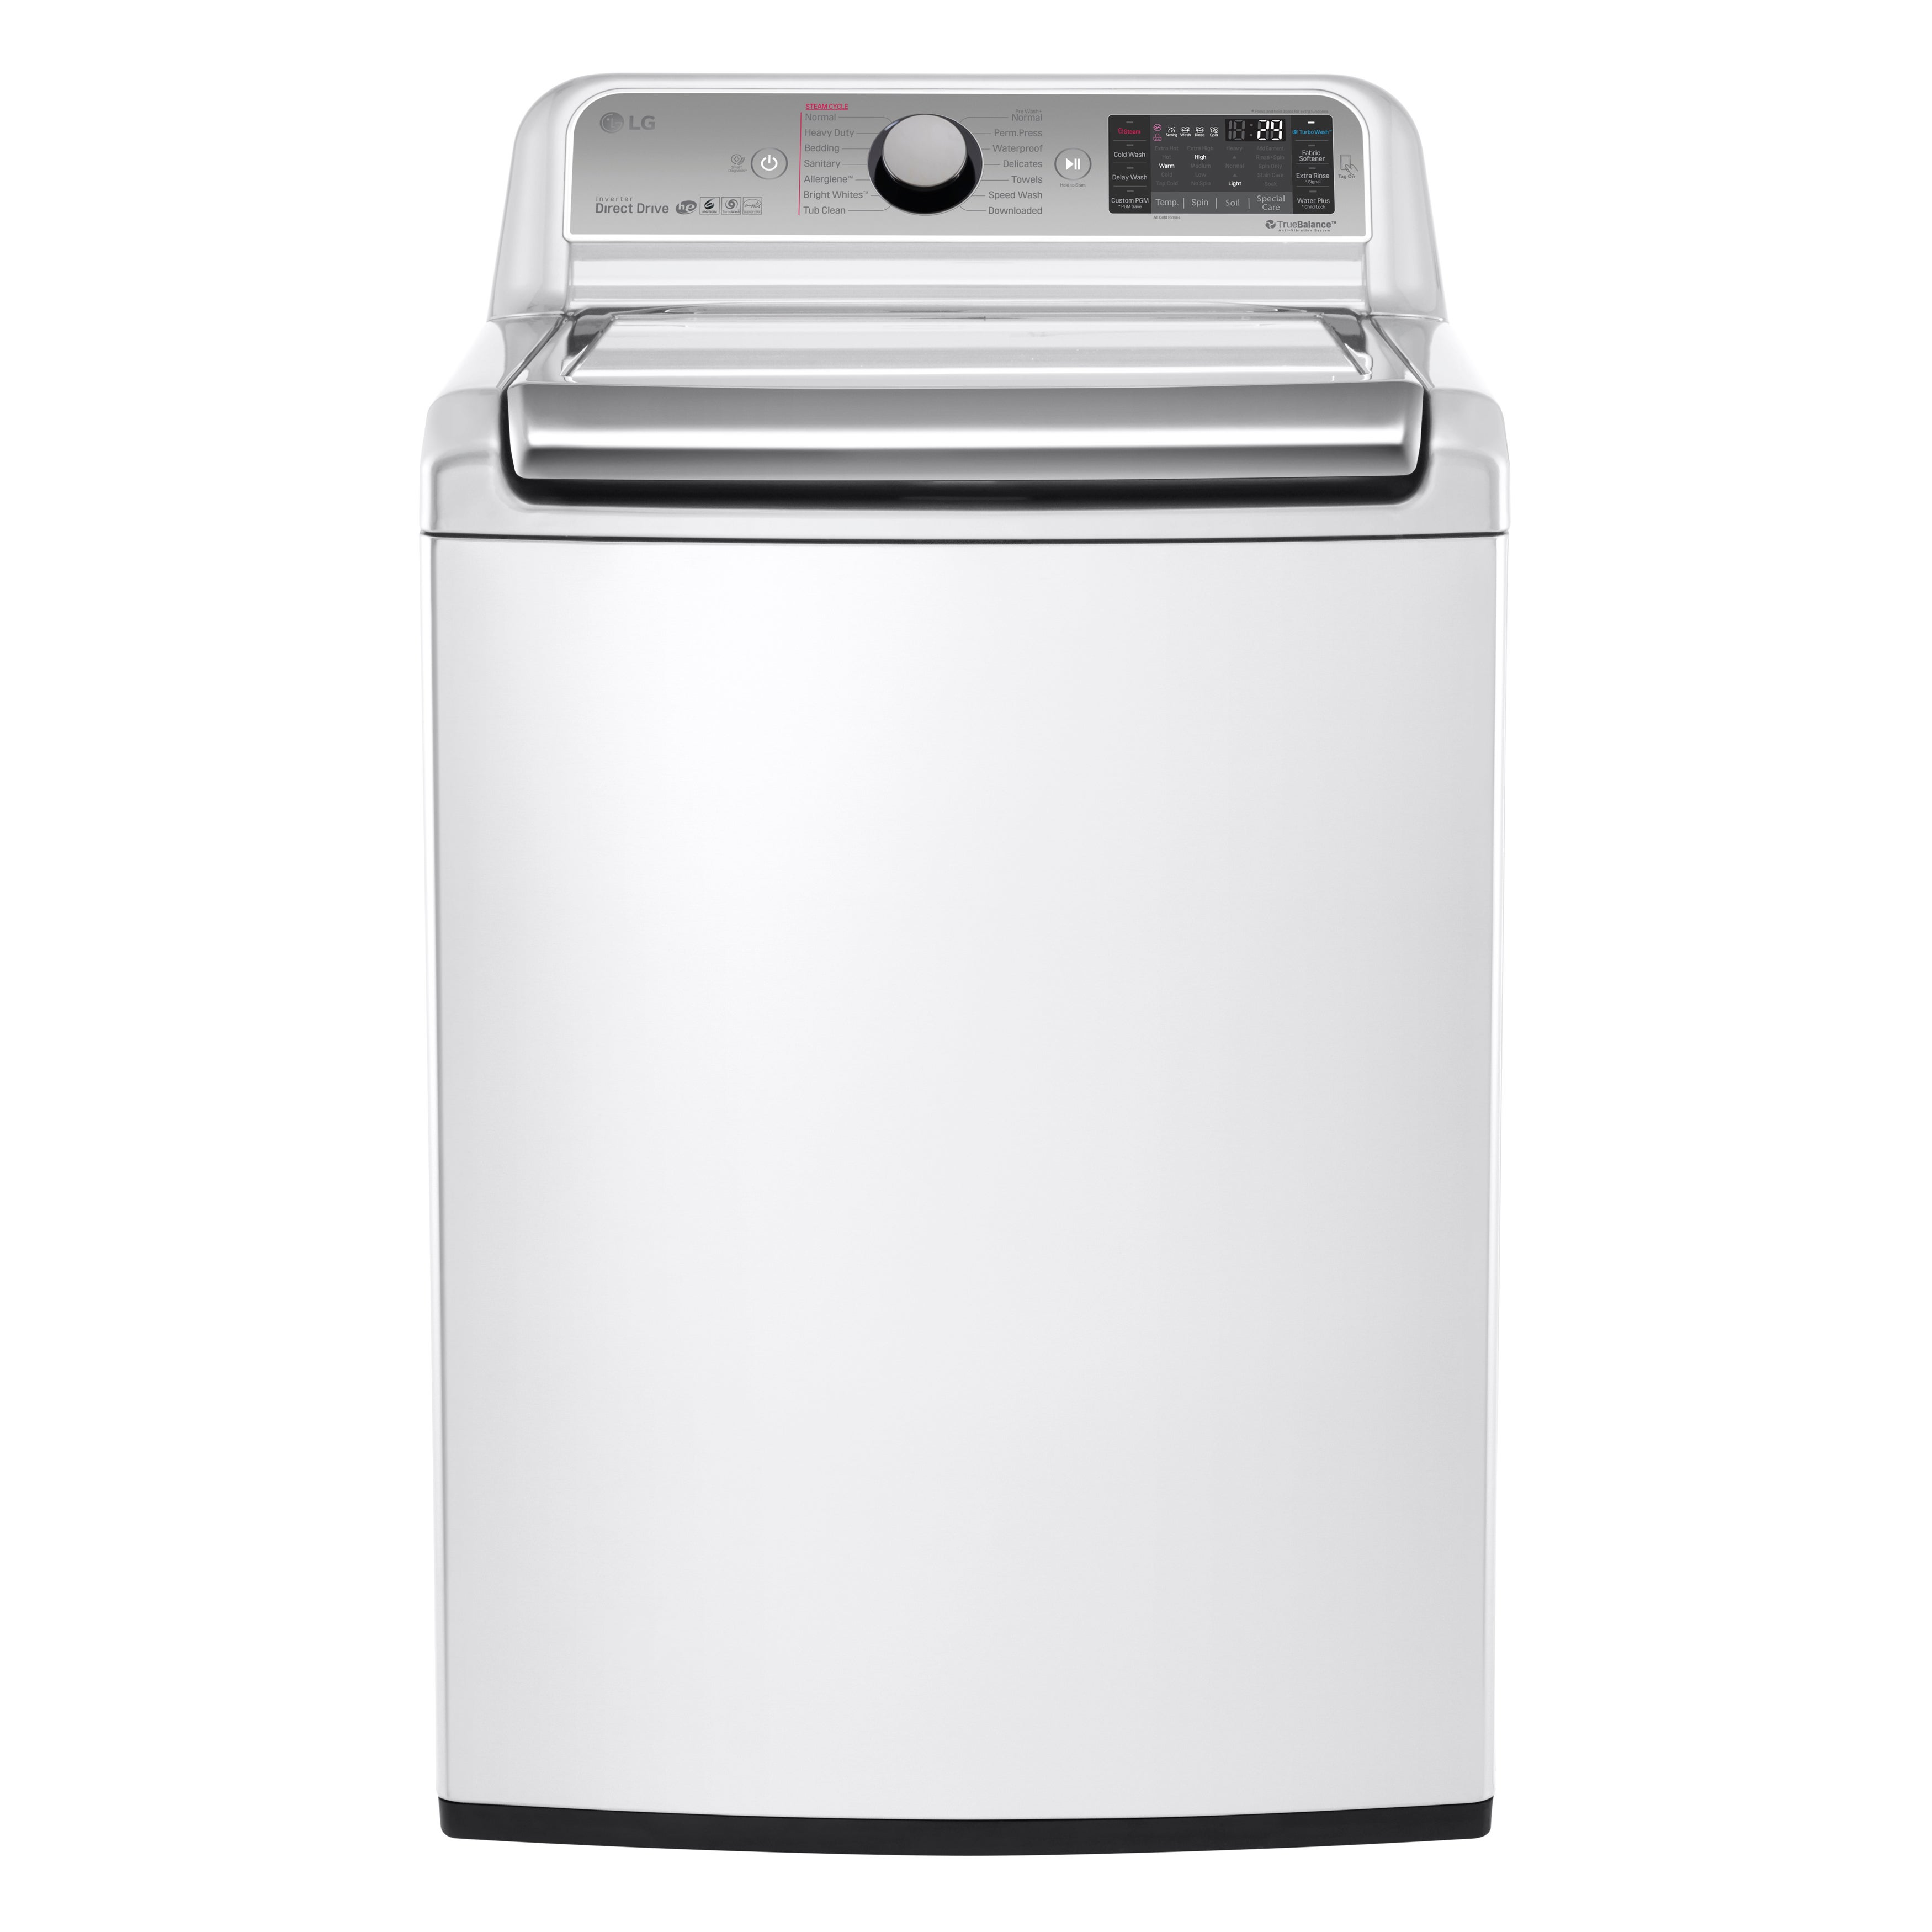 LG White 5.2-cubic-foot Mega Capacity Top-load Washer wit...